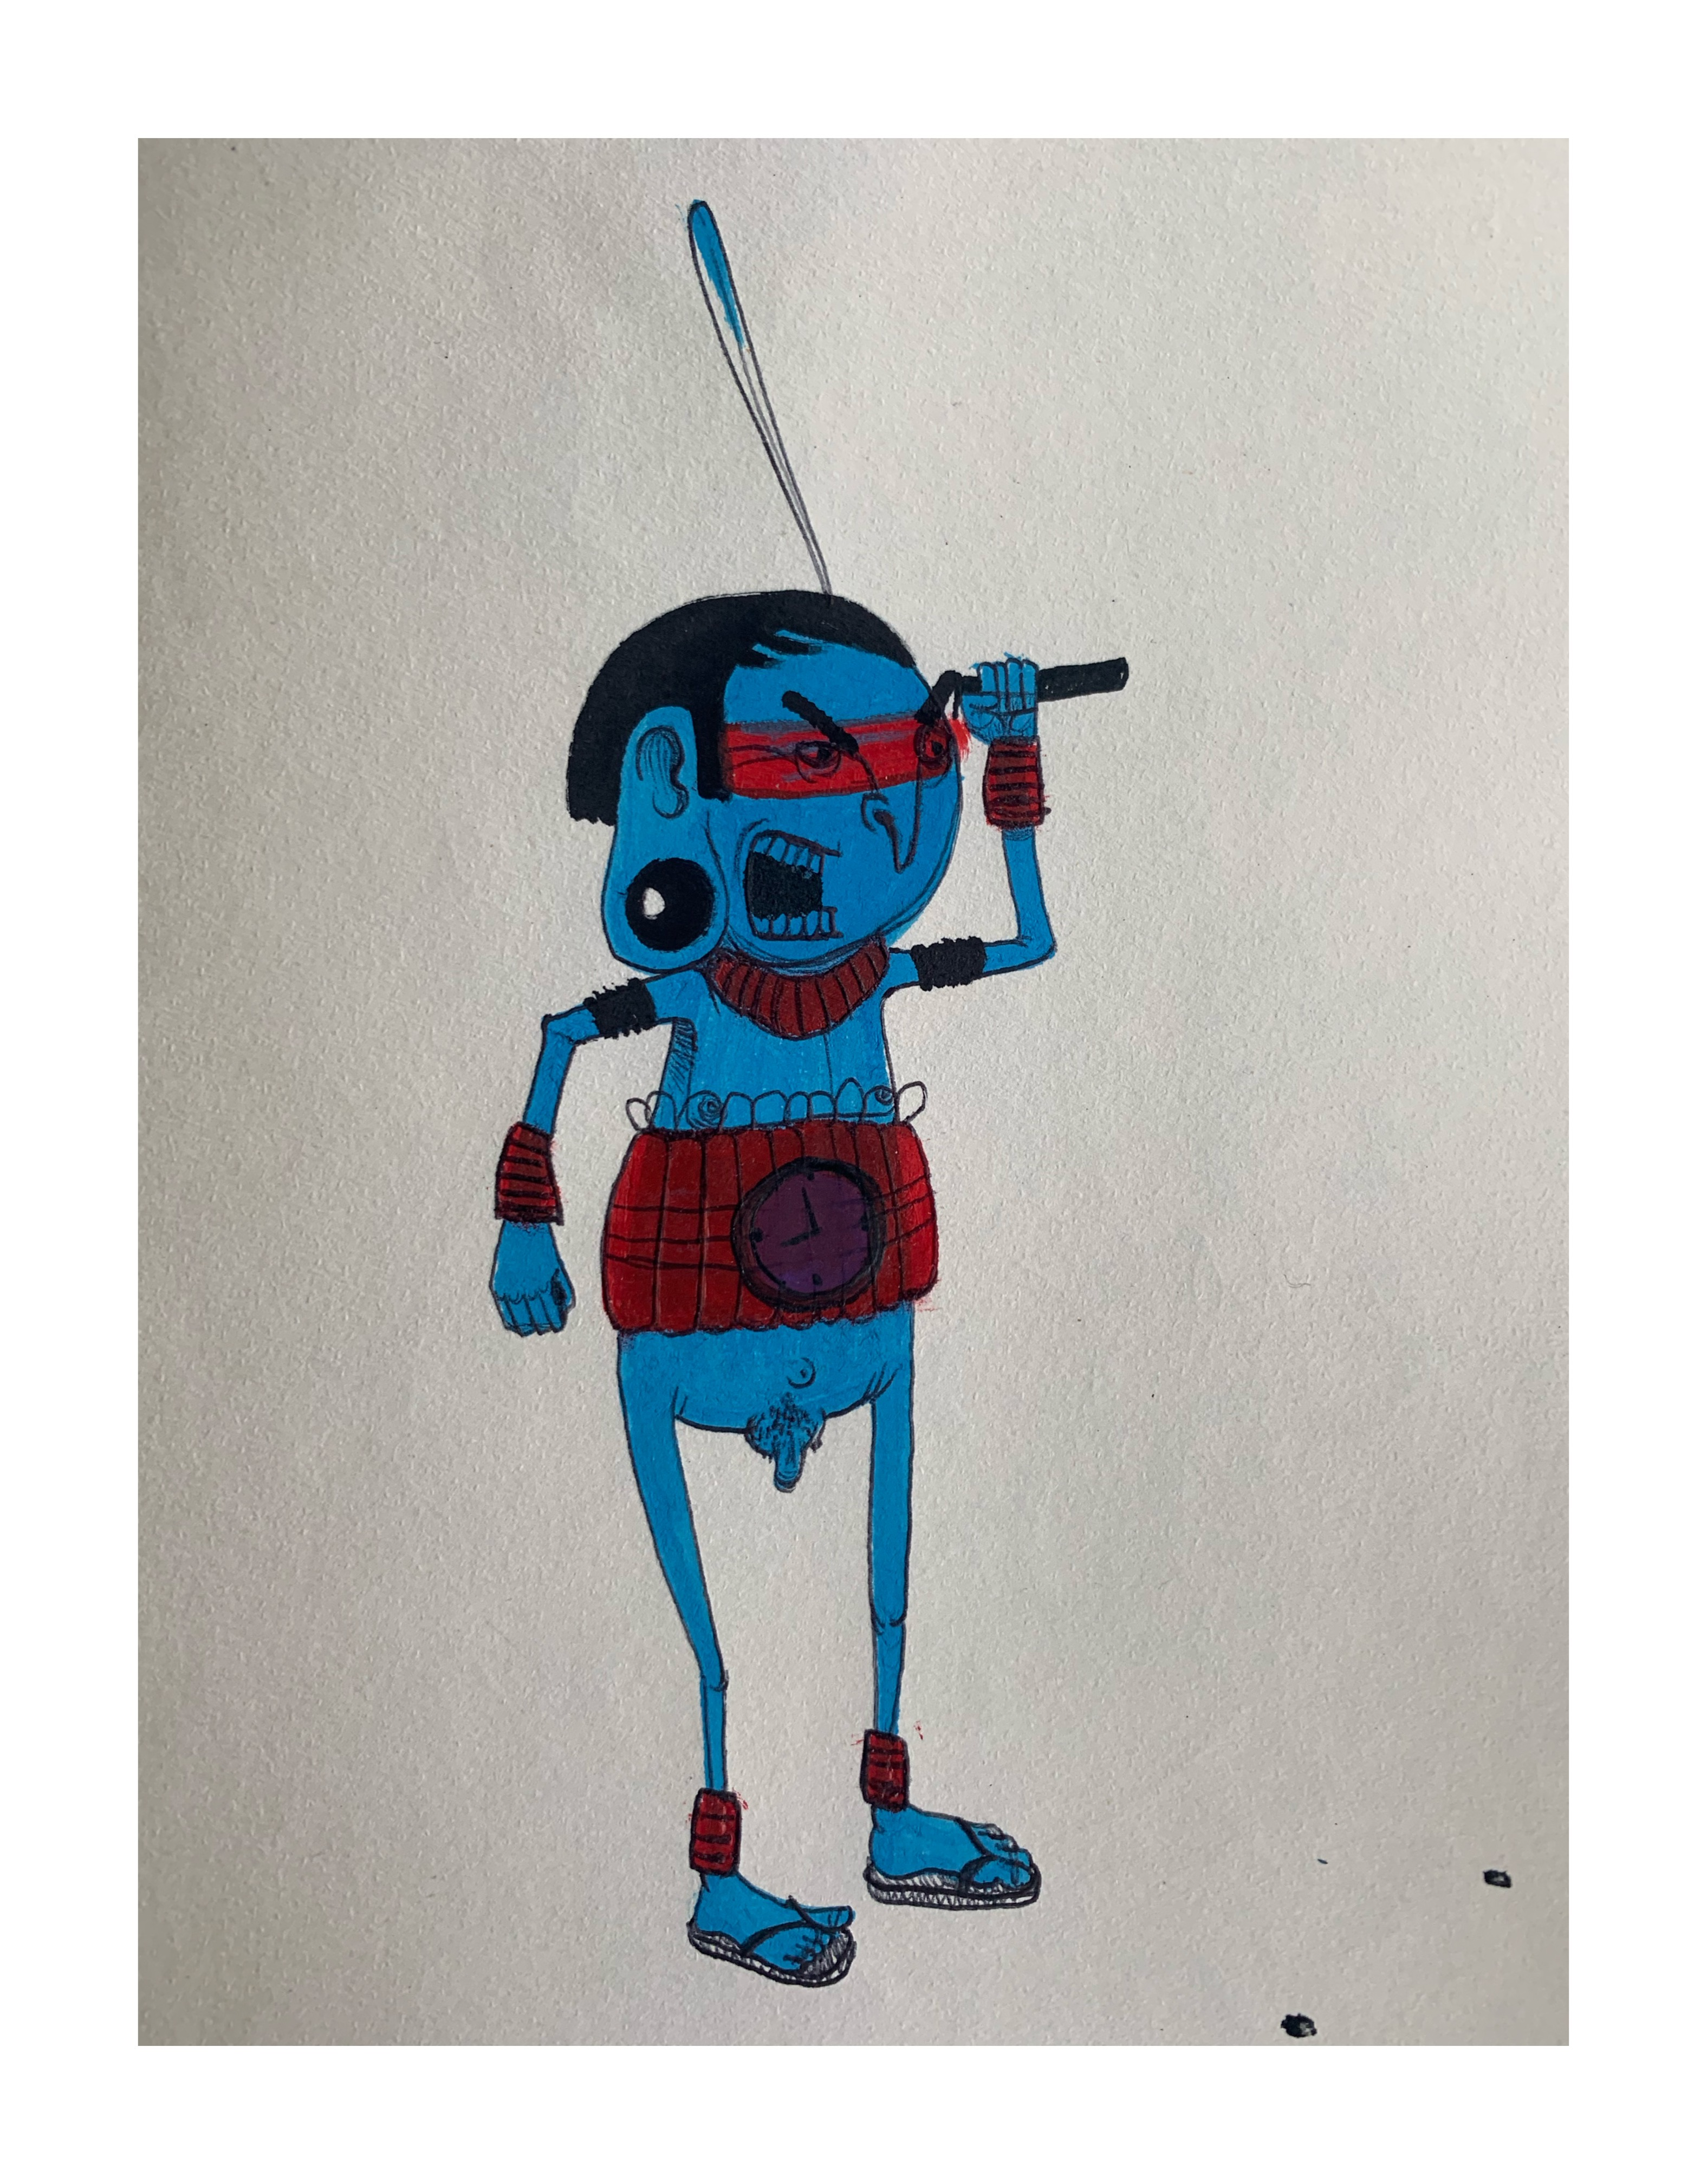 CRANIO , 'UNTITLED DOODLE' - 2013 , FROM THE PRIVATE COLLECTION OF PEZ - Image 3 of 3